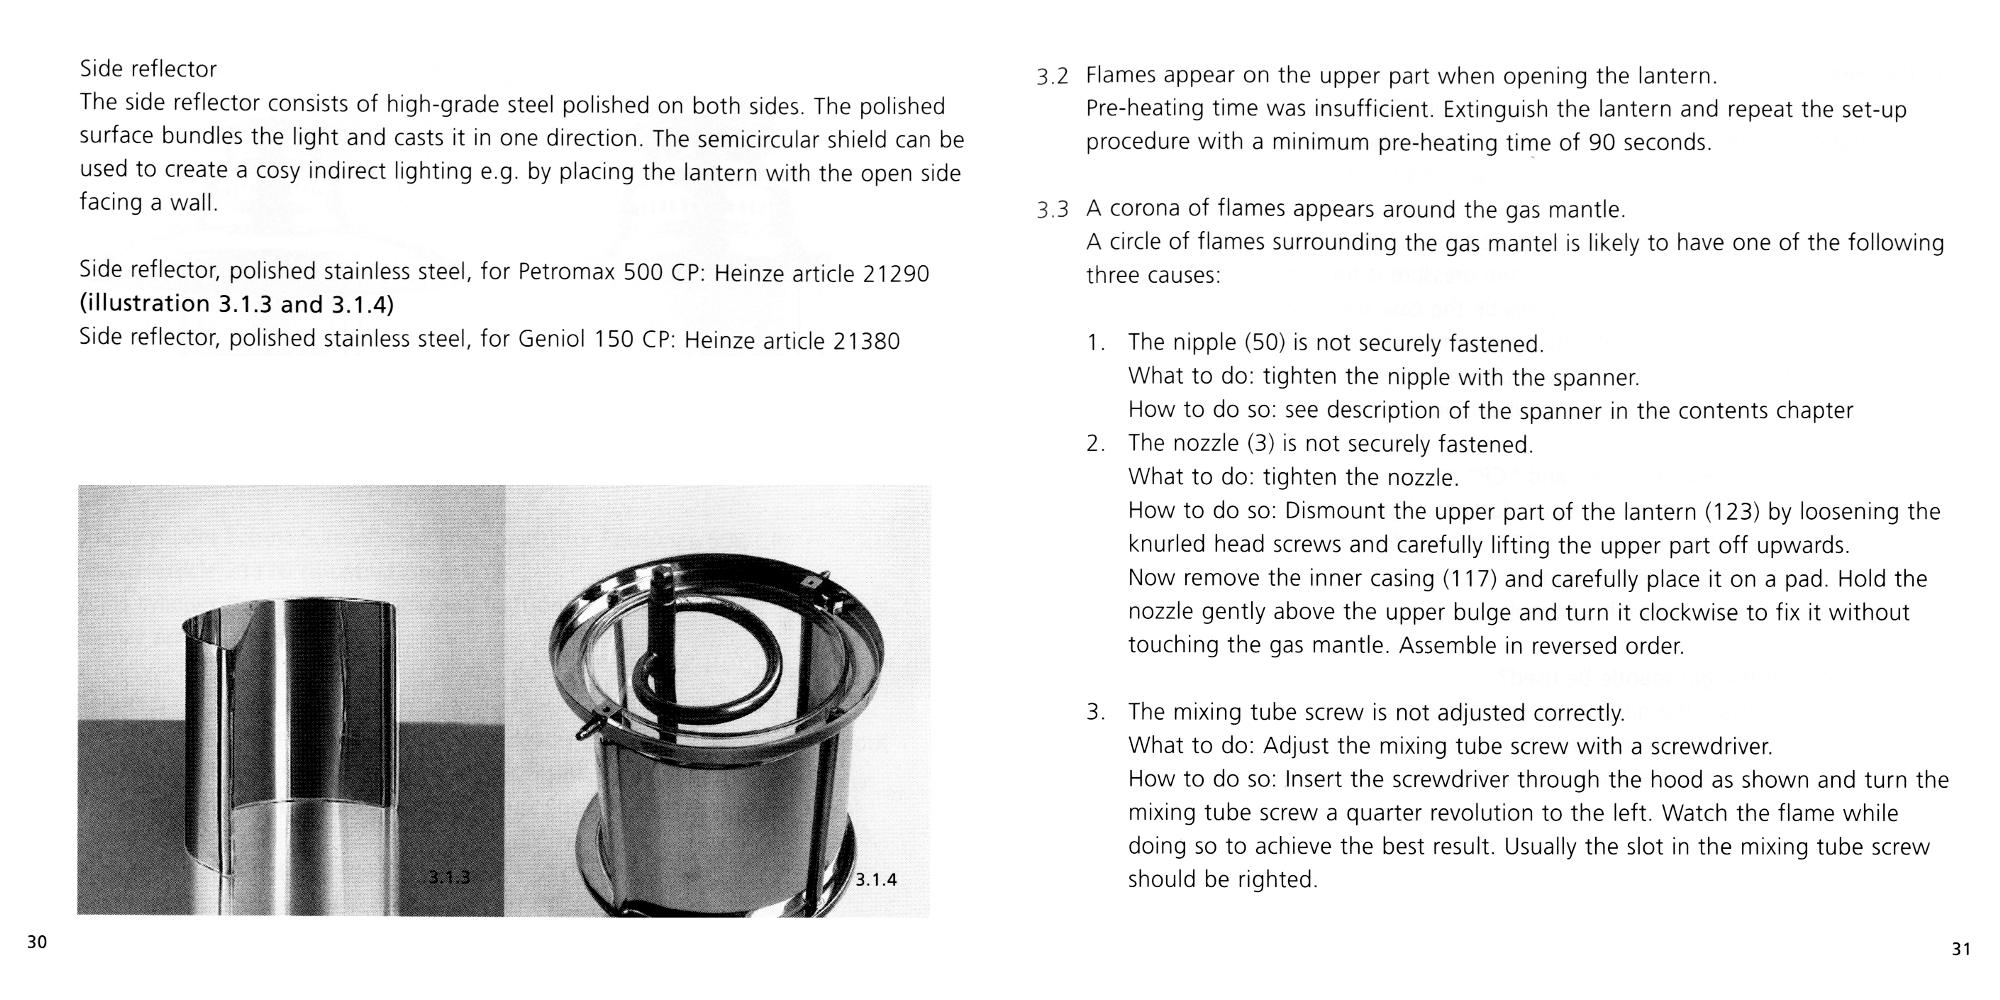 Petromax Instructions page 30 and 31